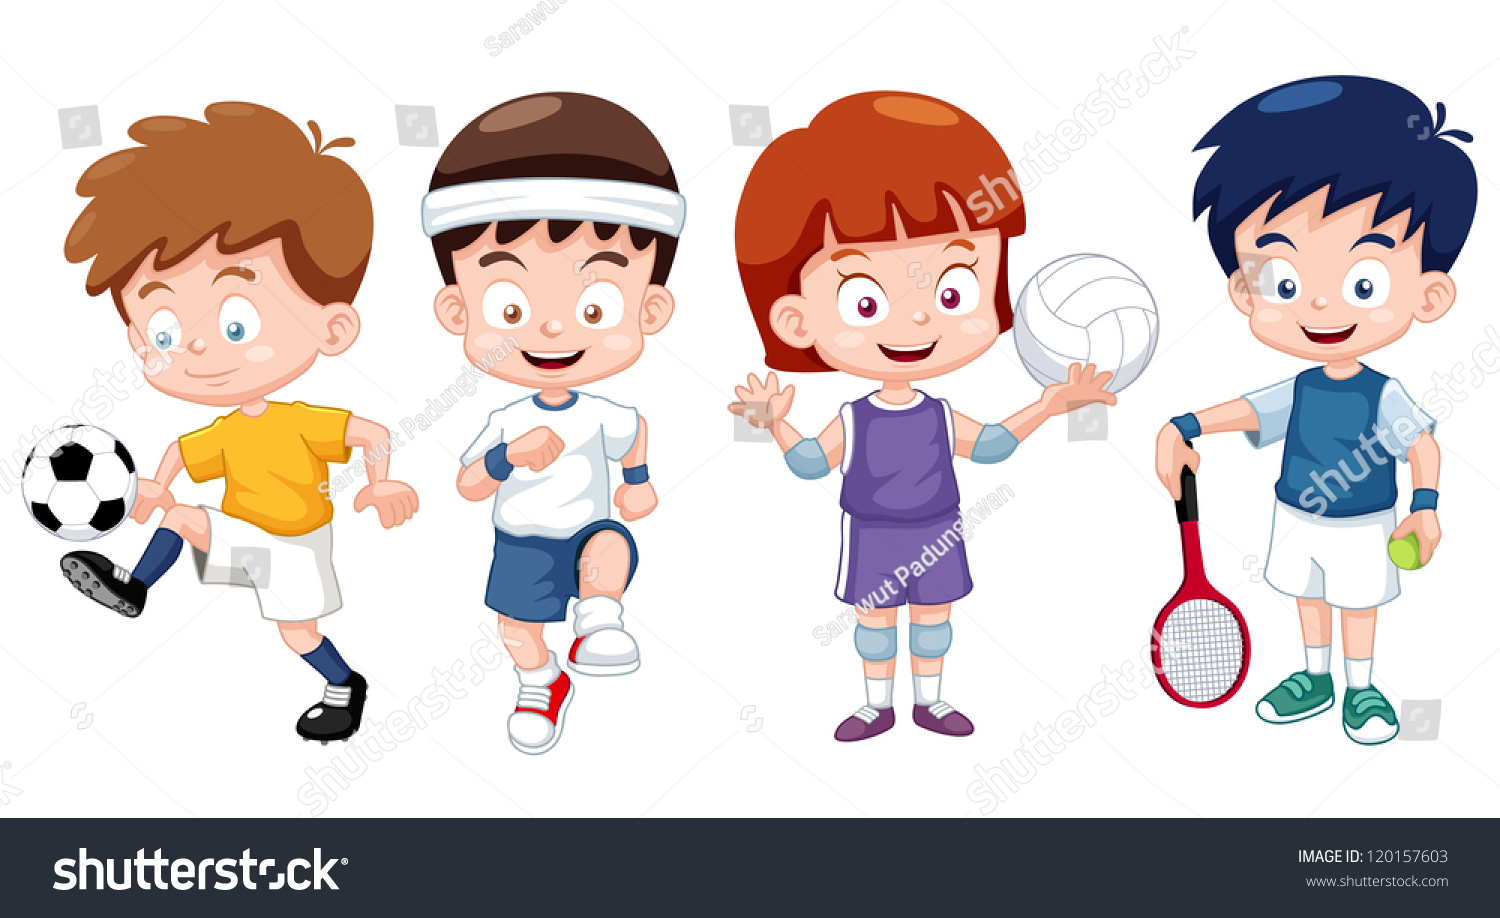 Cartoon Characters Playing Sports : Cartoon kids playing sports pixshark images